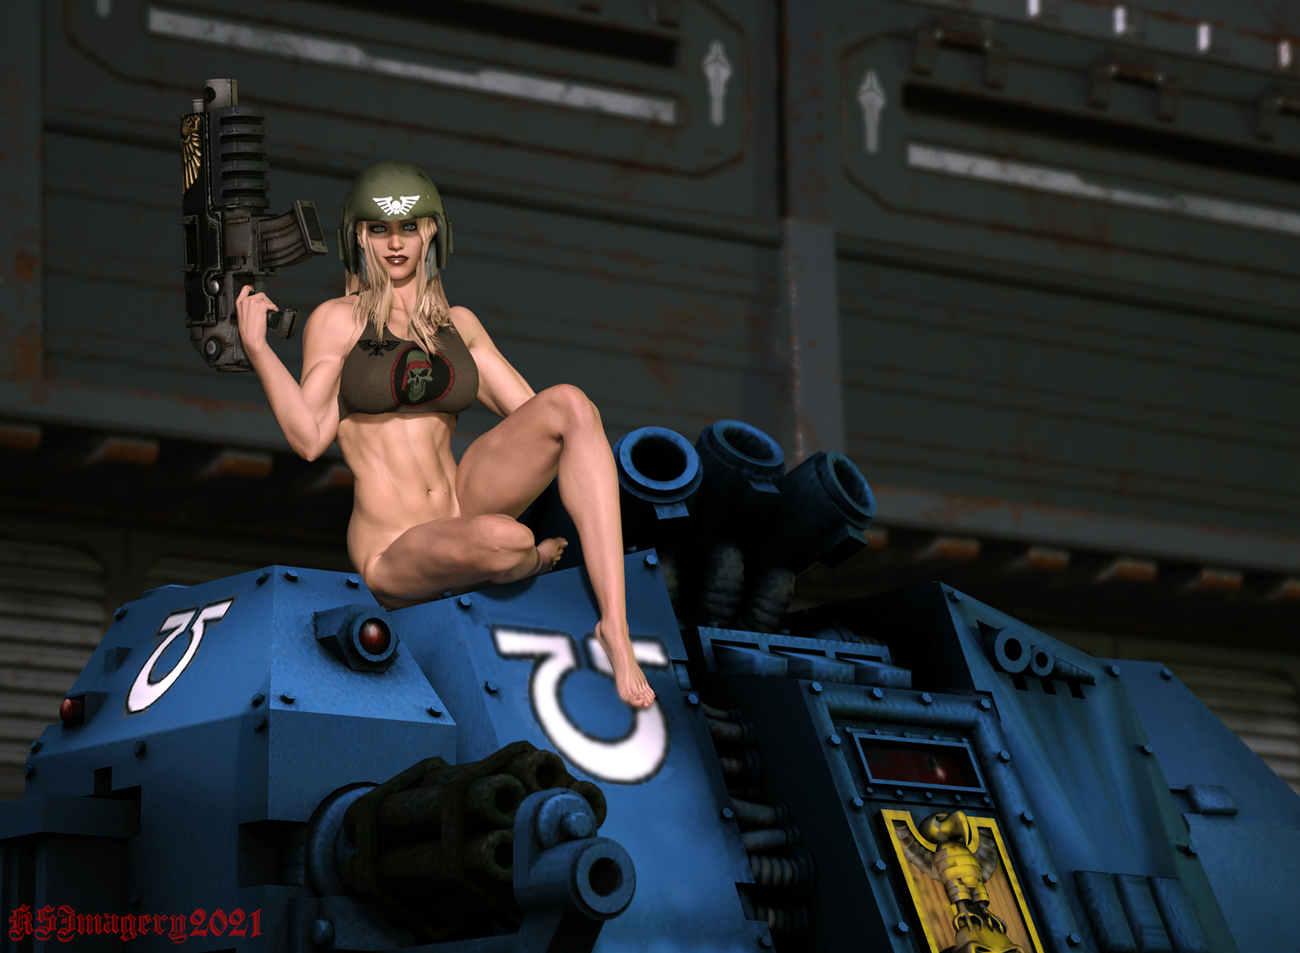 For the Emperor Pinup by ksmith3620